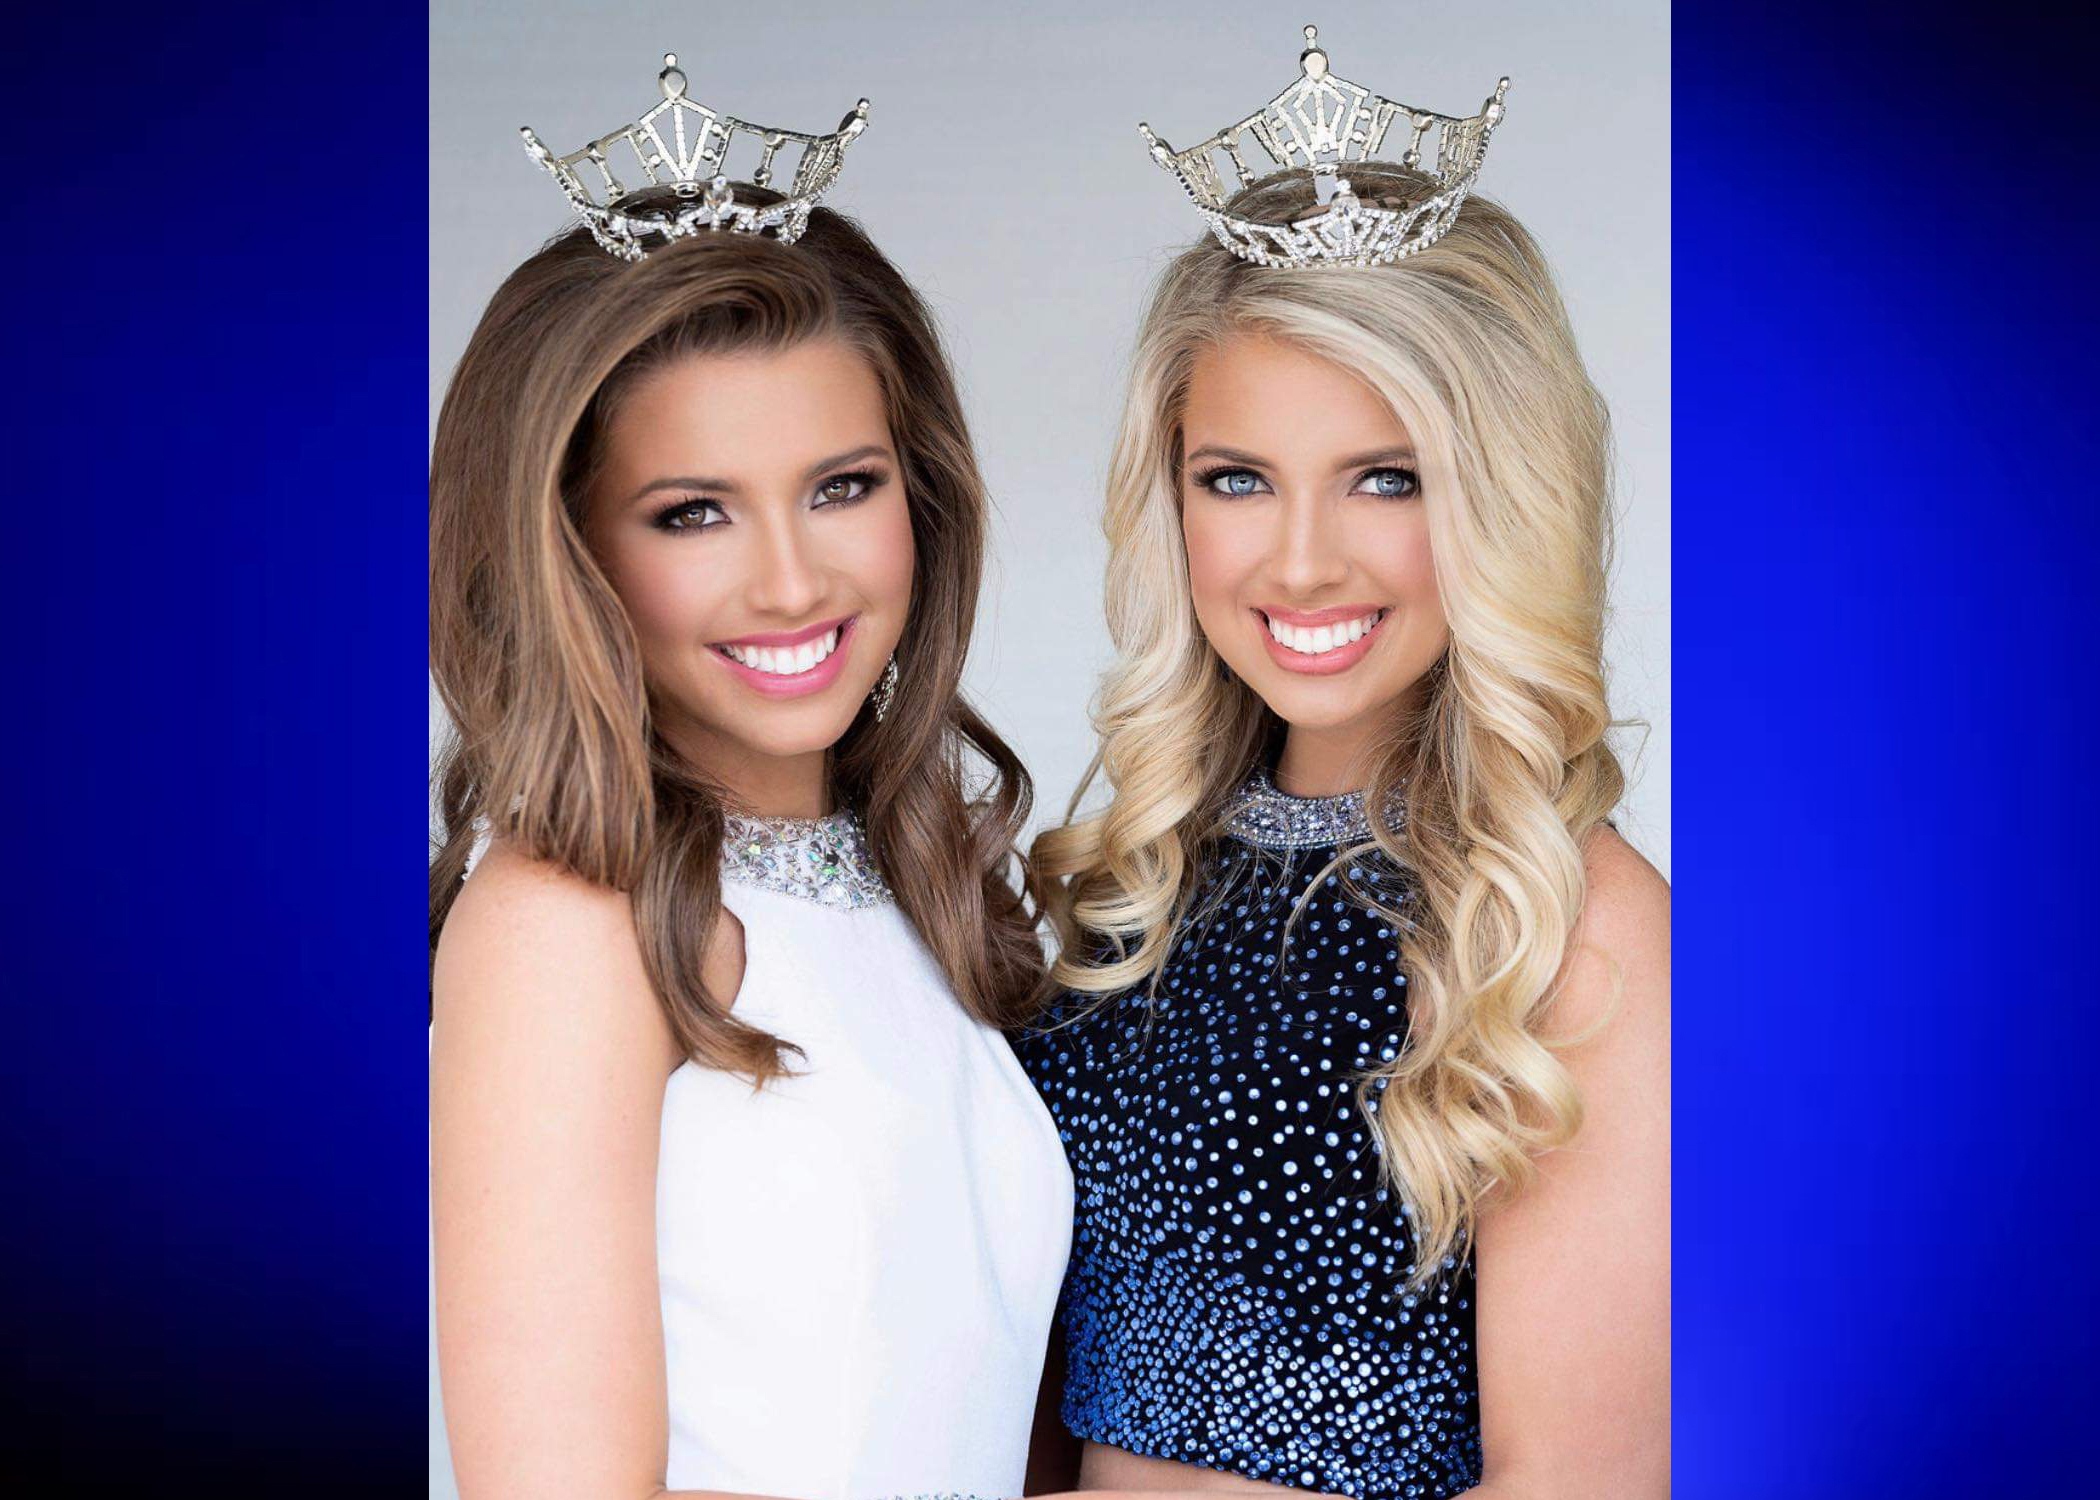 Trussville sisters competing in Miss Alabama together